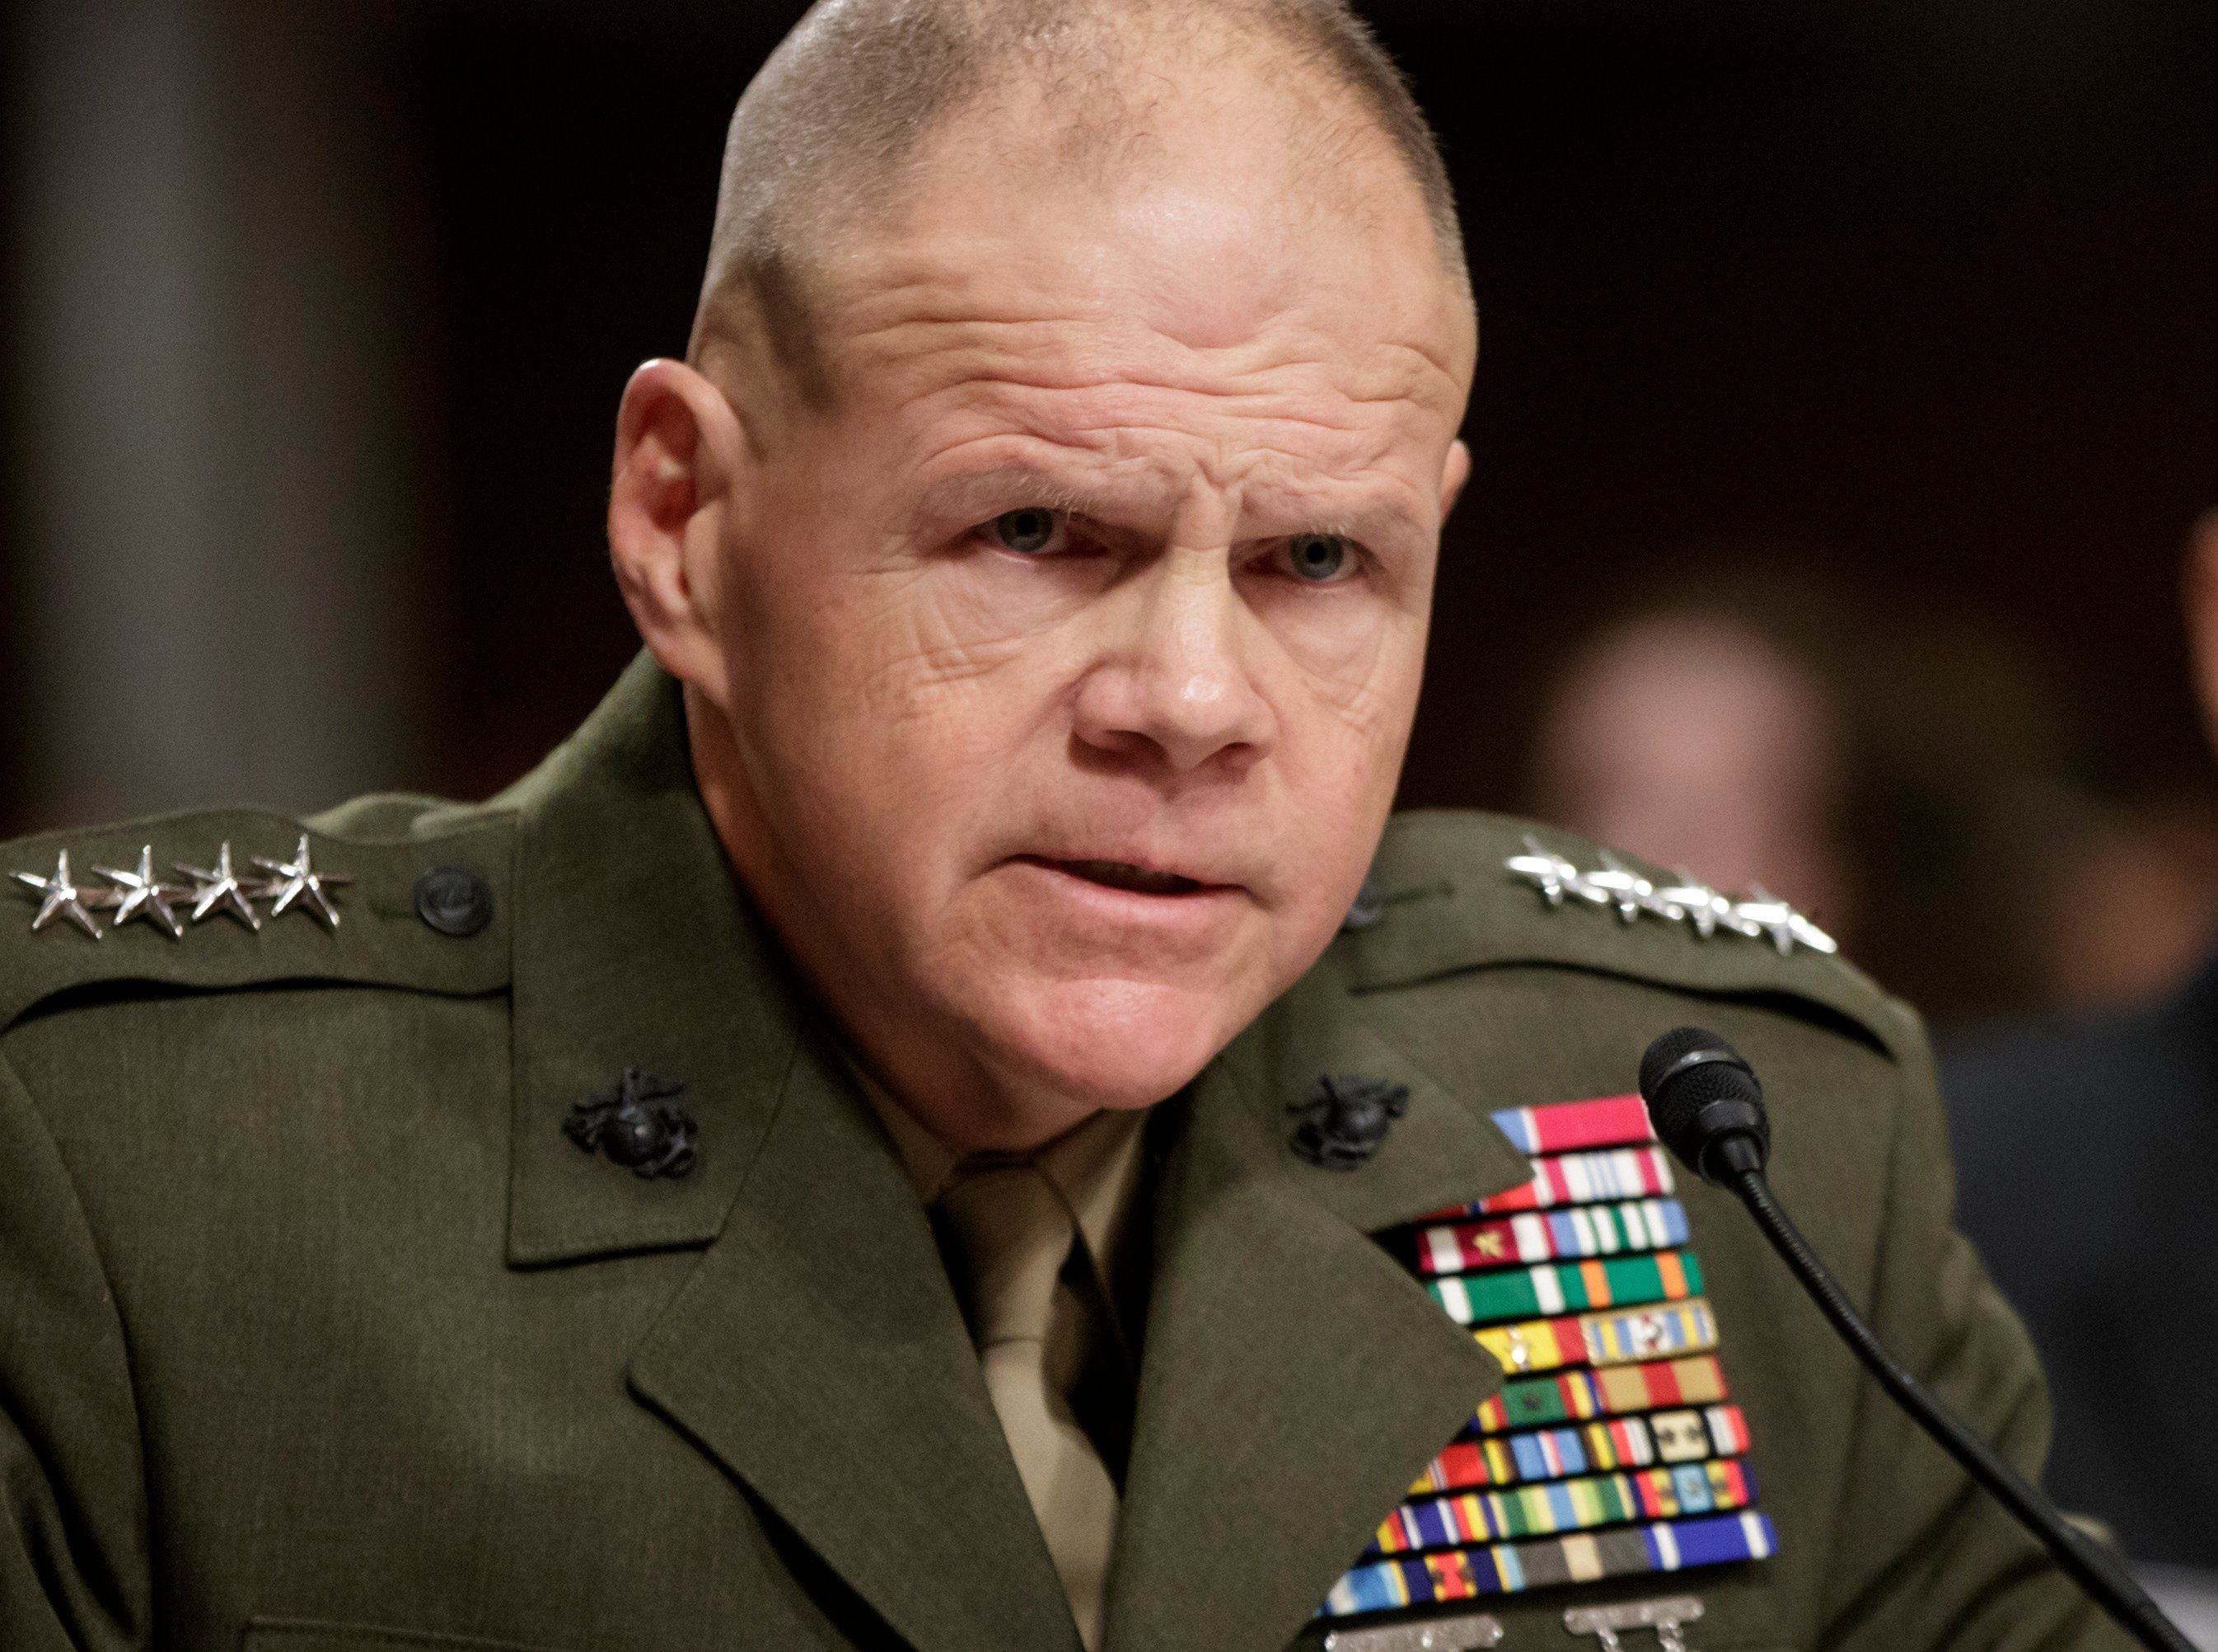 Marine Corps Commandant Gen. Robert B. Neller responds to an angry and skeptical Senate Armed Services Committee member Sen. Kirsten Gillibrand, D-N.Y. while testifying on Capitol Hill. (AP Photo/J. Scott Applewhite)